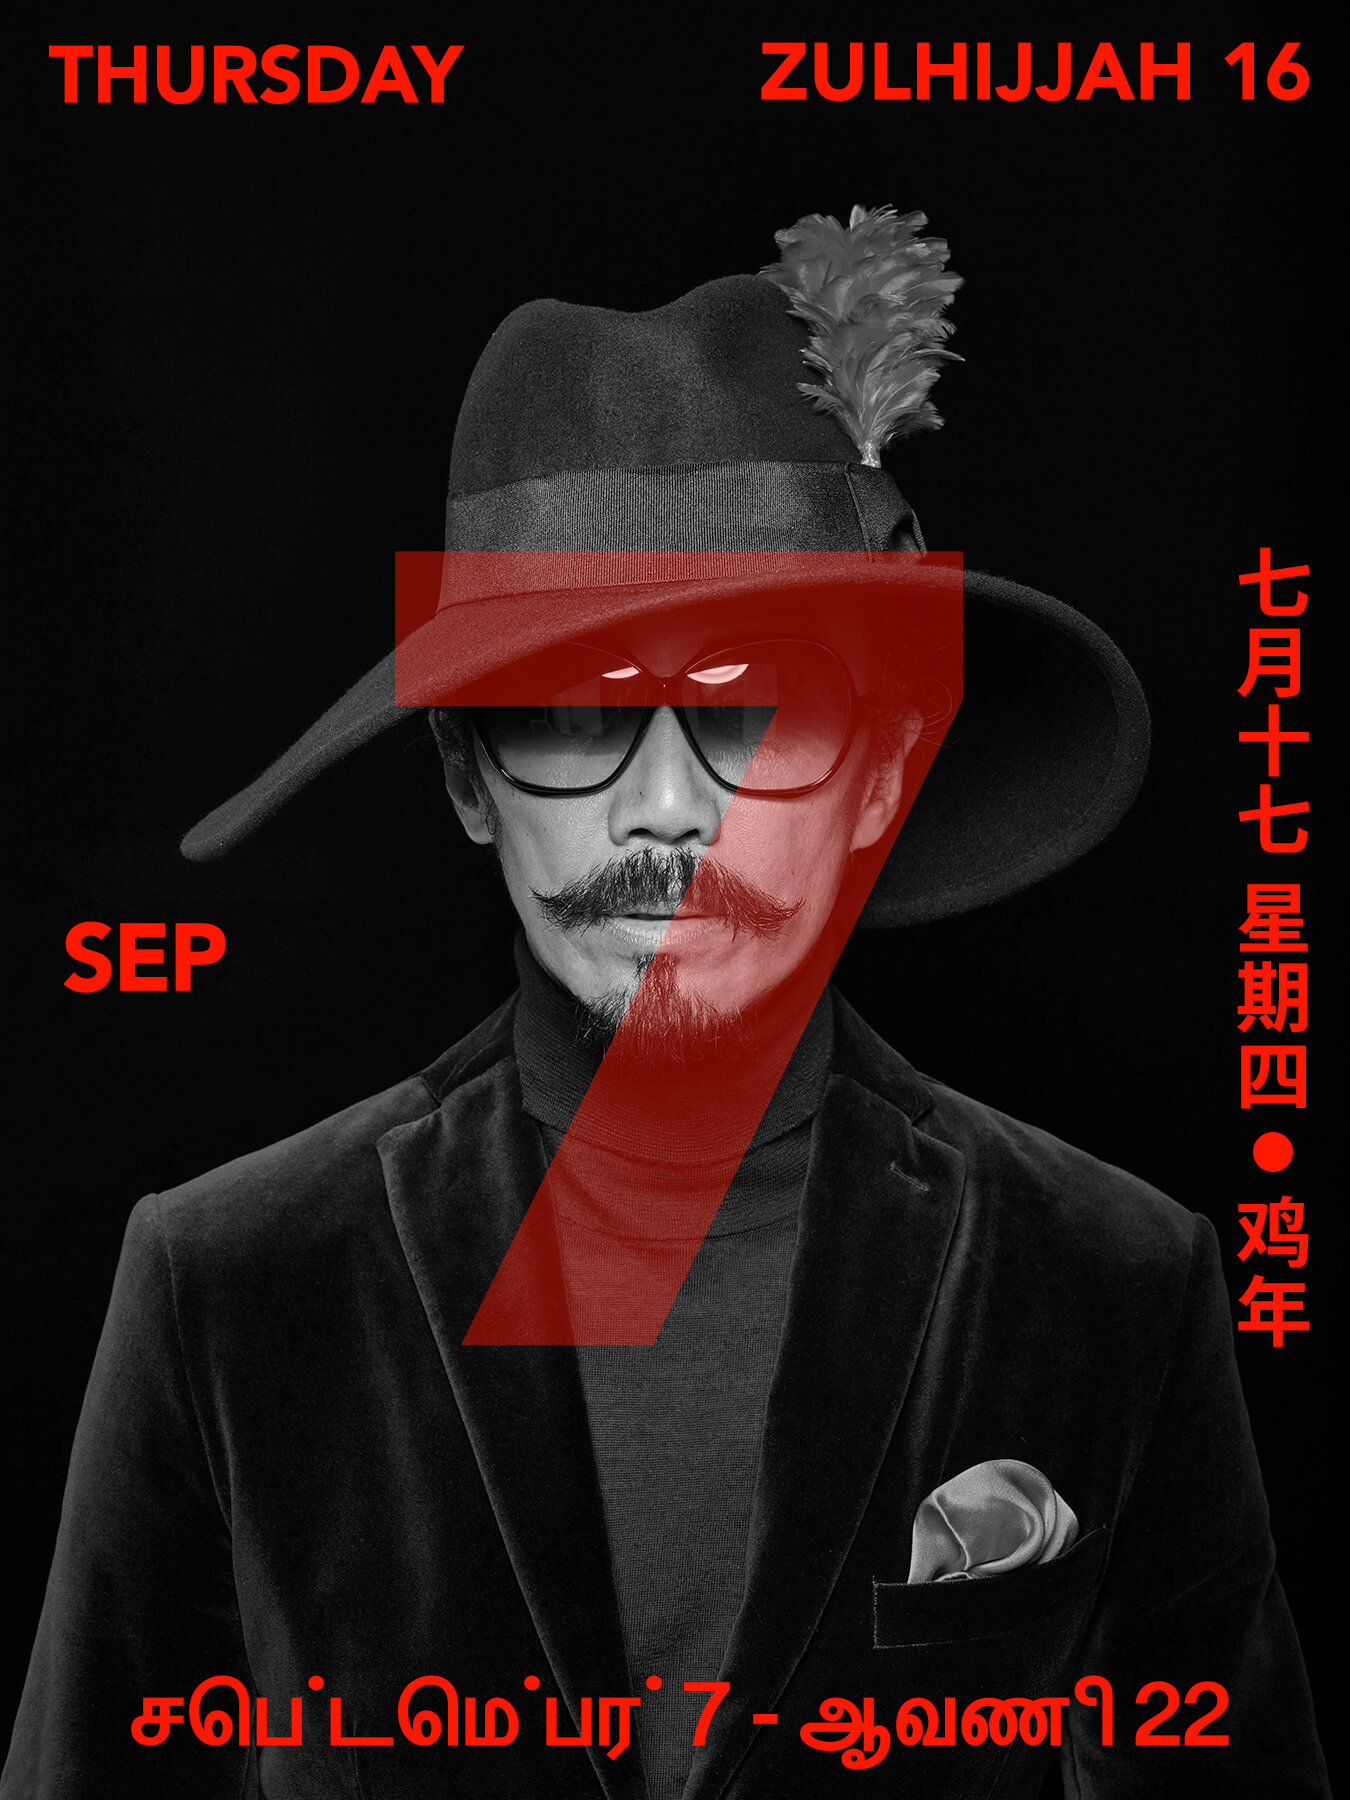 7 Sep 2017: Derong dressed in a large fedora hat and dark velvet suit